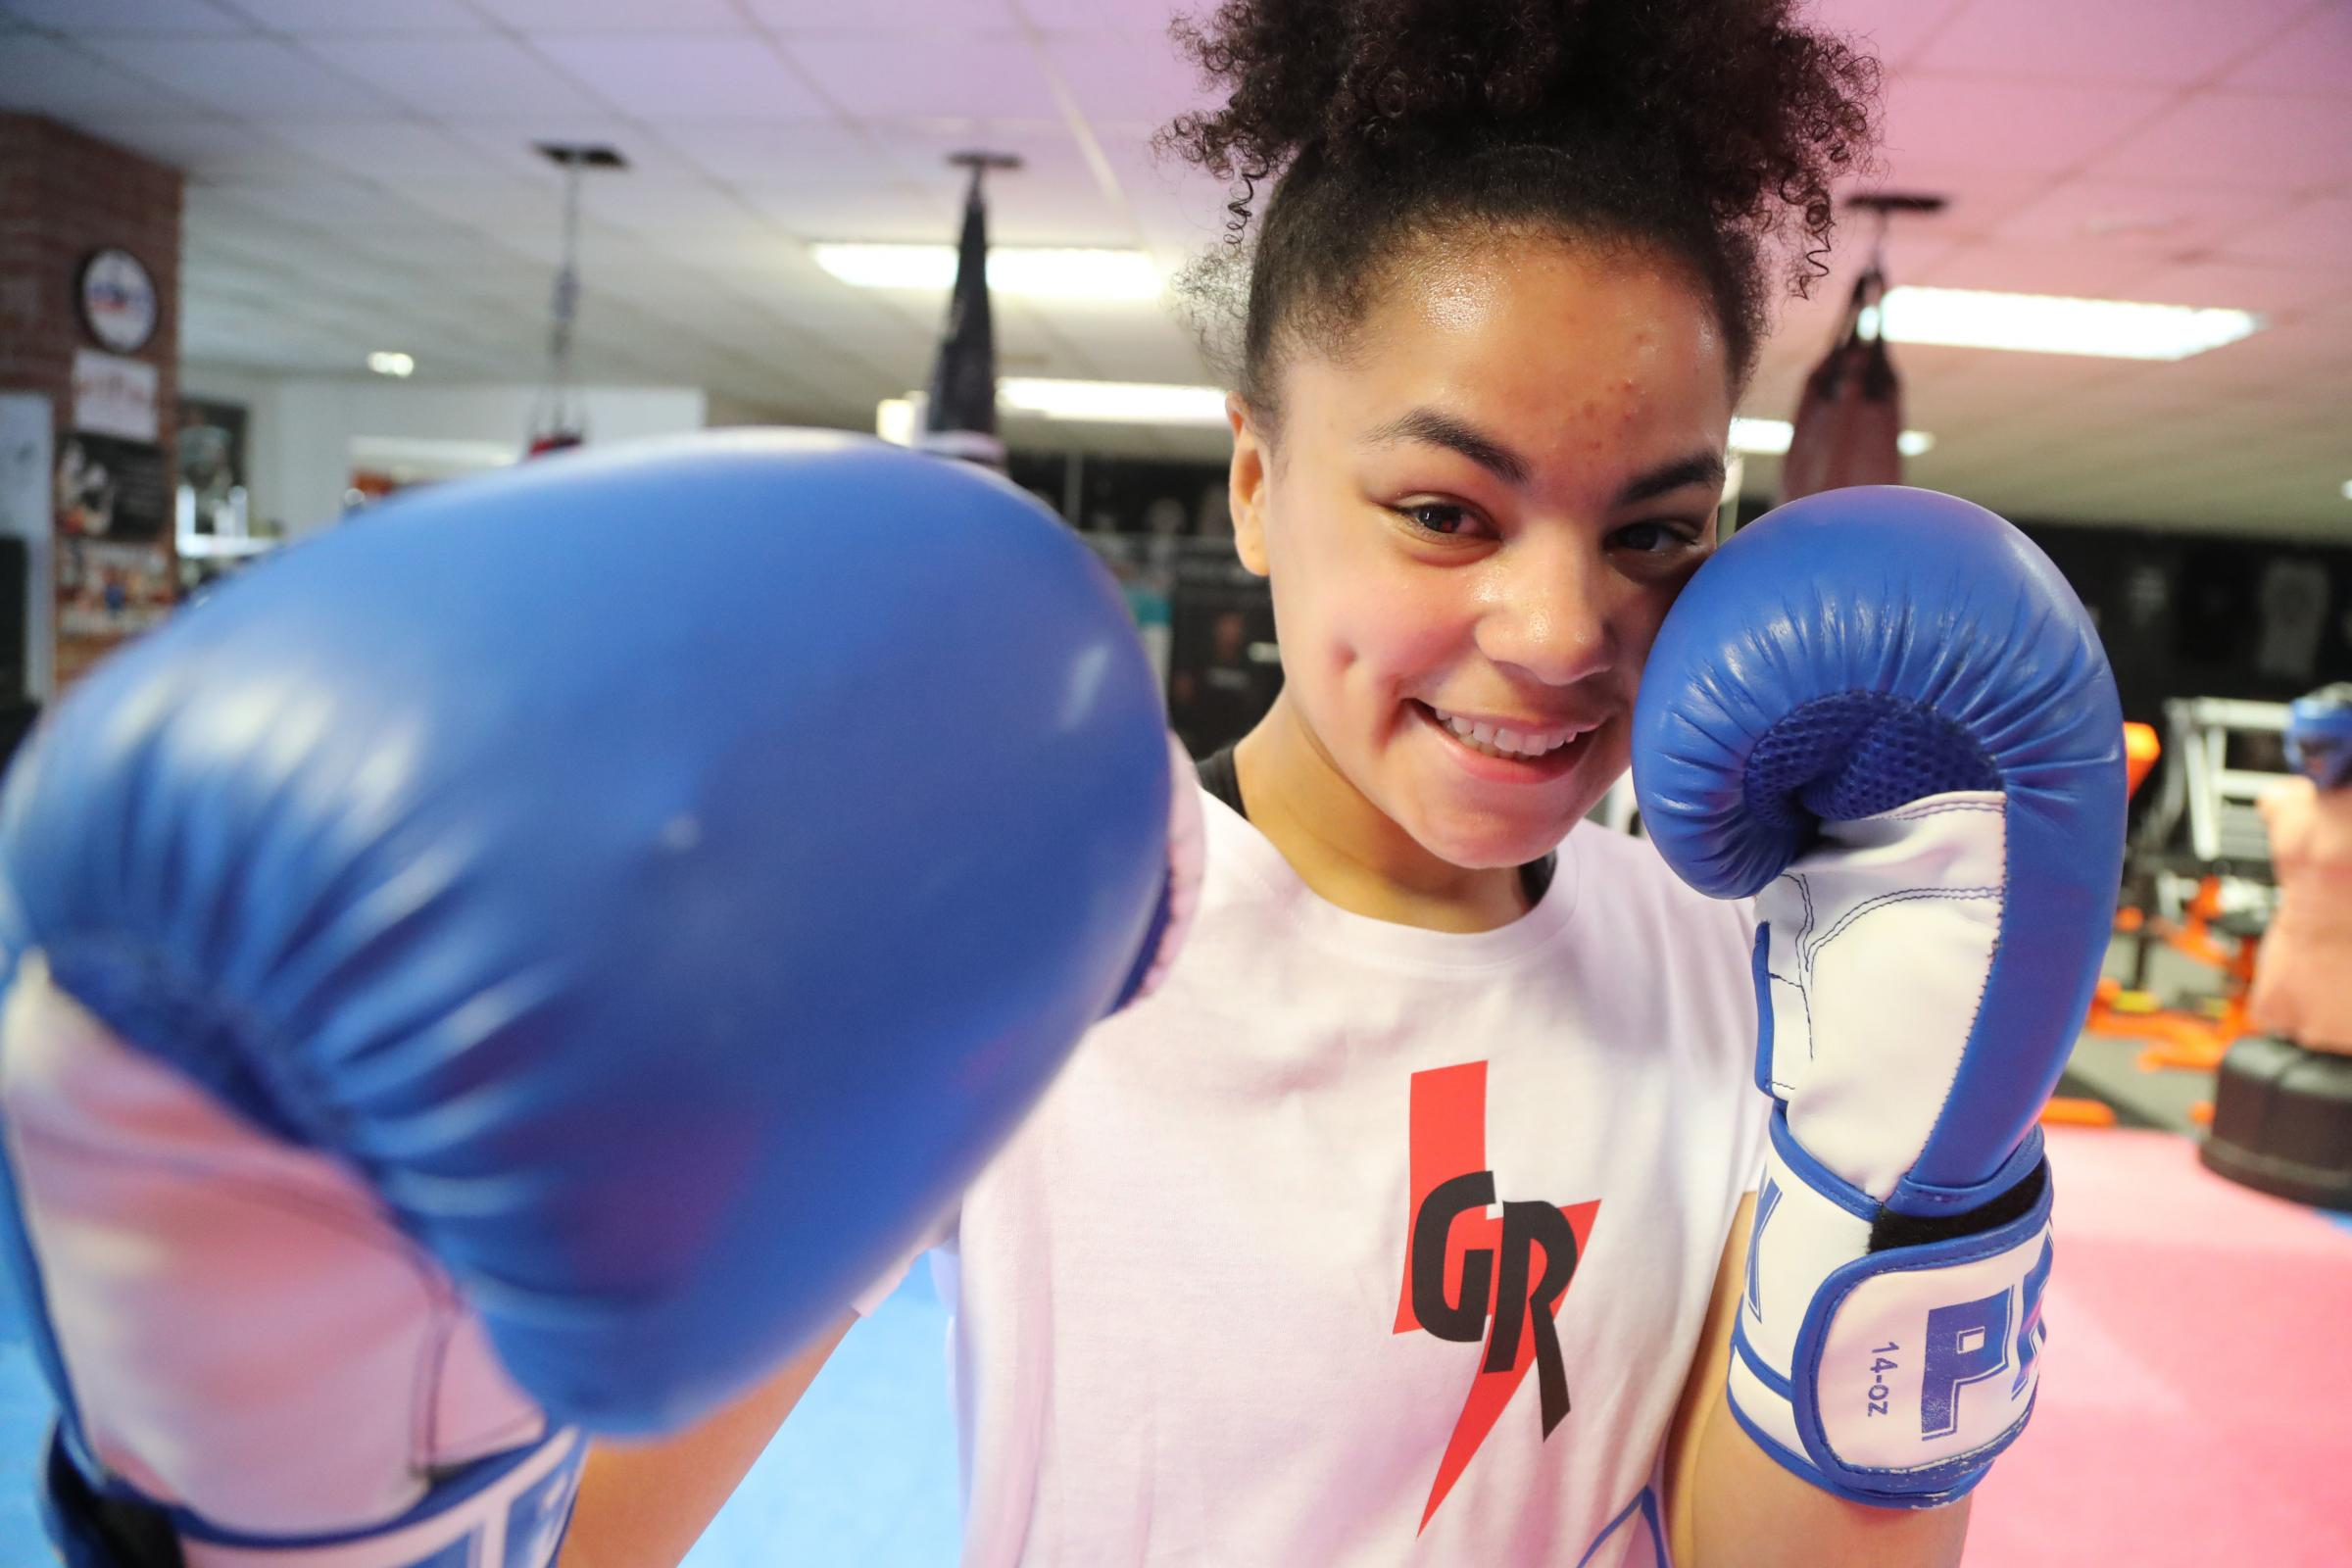 Boxing starlet Gabrielle Reid hopes to inspire others in Olympic dream pursuit